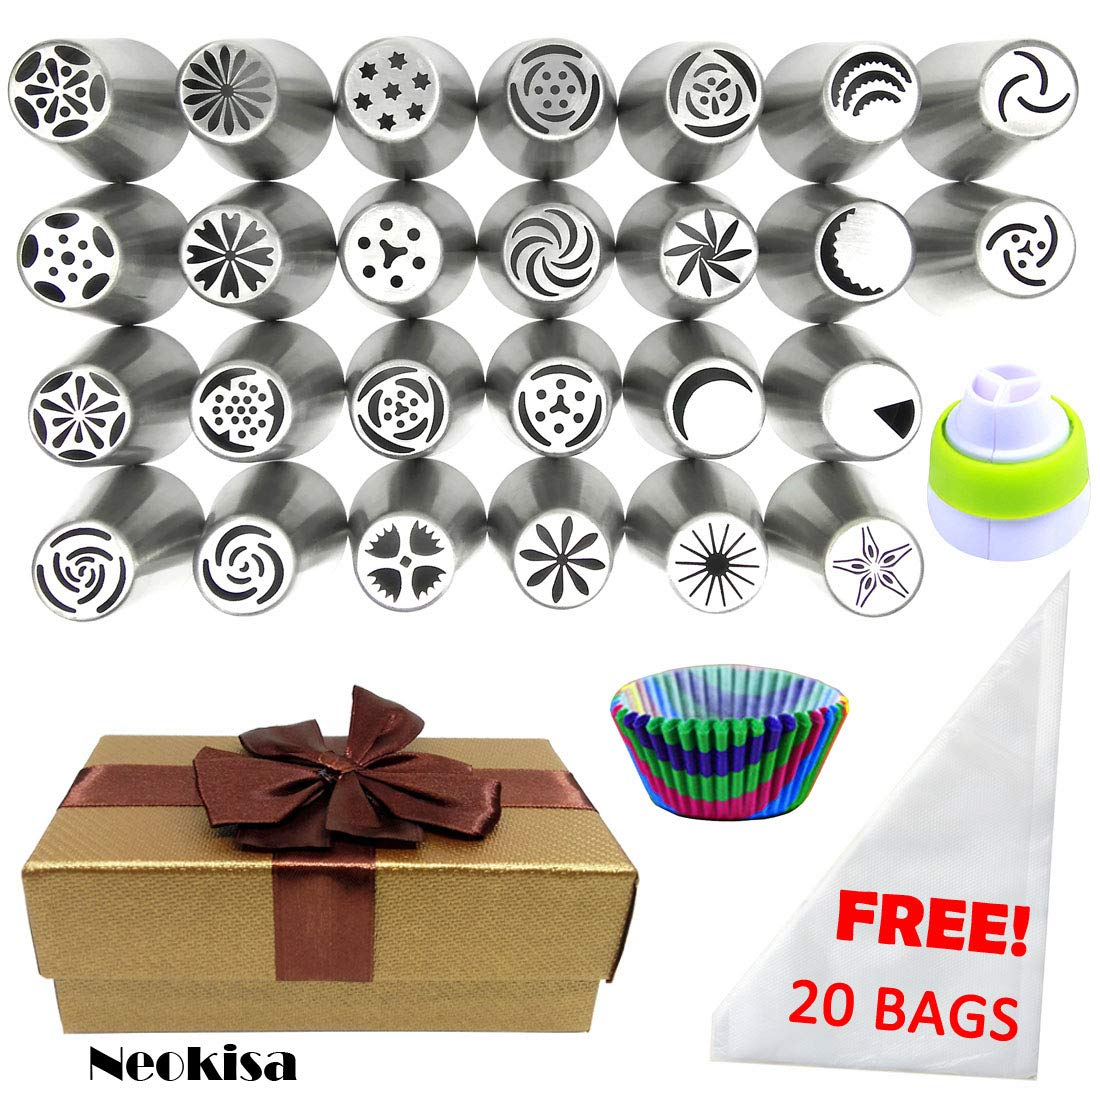 Neokisa 67 PCS Russian Piping Tips Set Gift-Wrapped Cupcake Molds Cake Decorating Tips Kit - 26 LARGE Russian Tips 20 Pastry Bags 1 Tri Color Coupler 10 Cupcake Liners - Cake Cupcake Icing Tools Tips